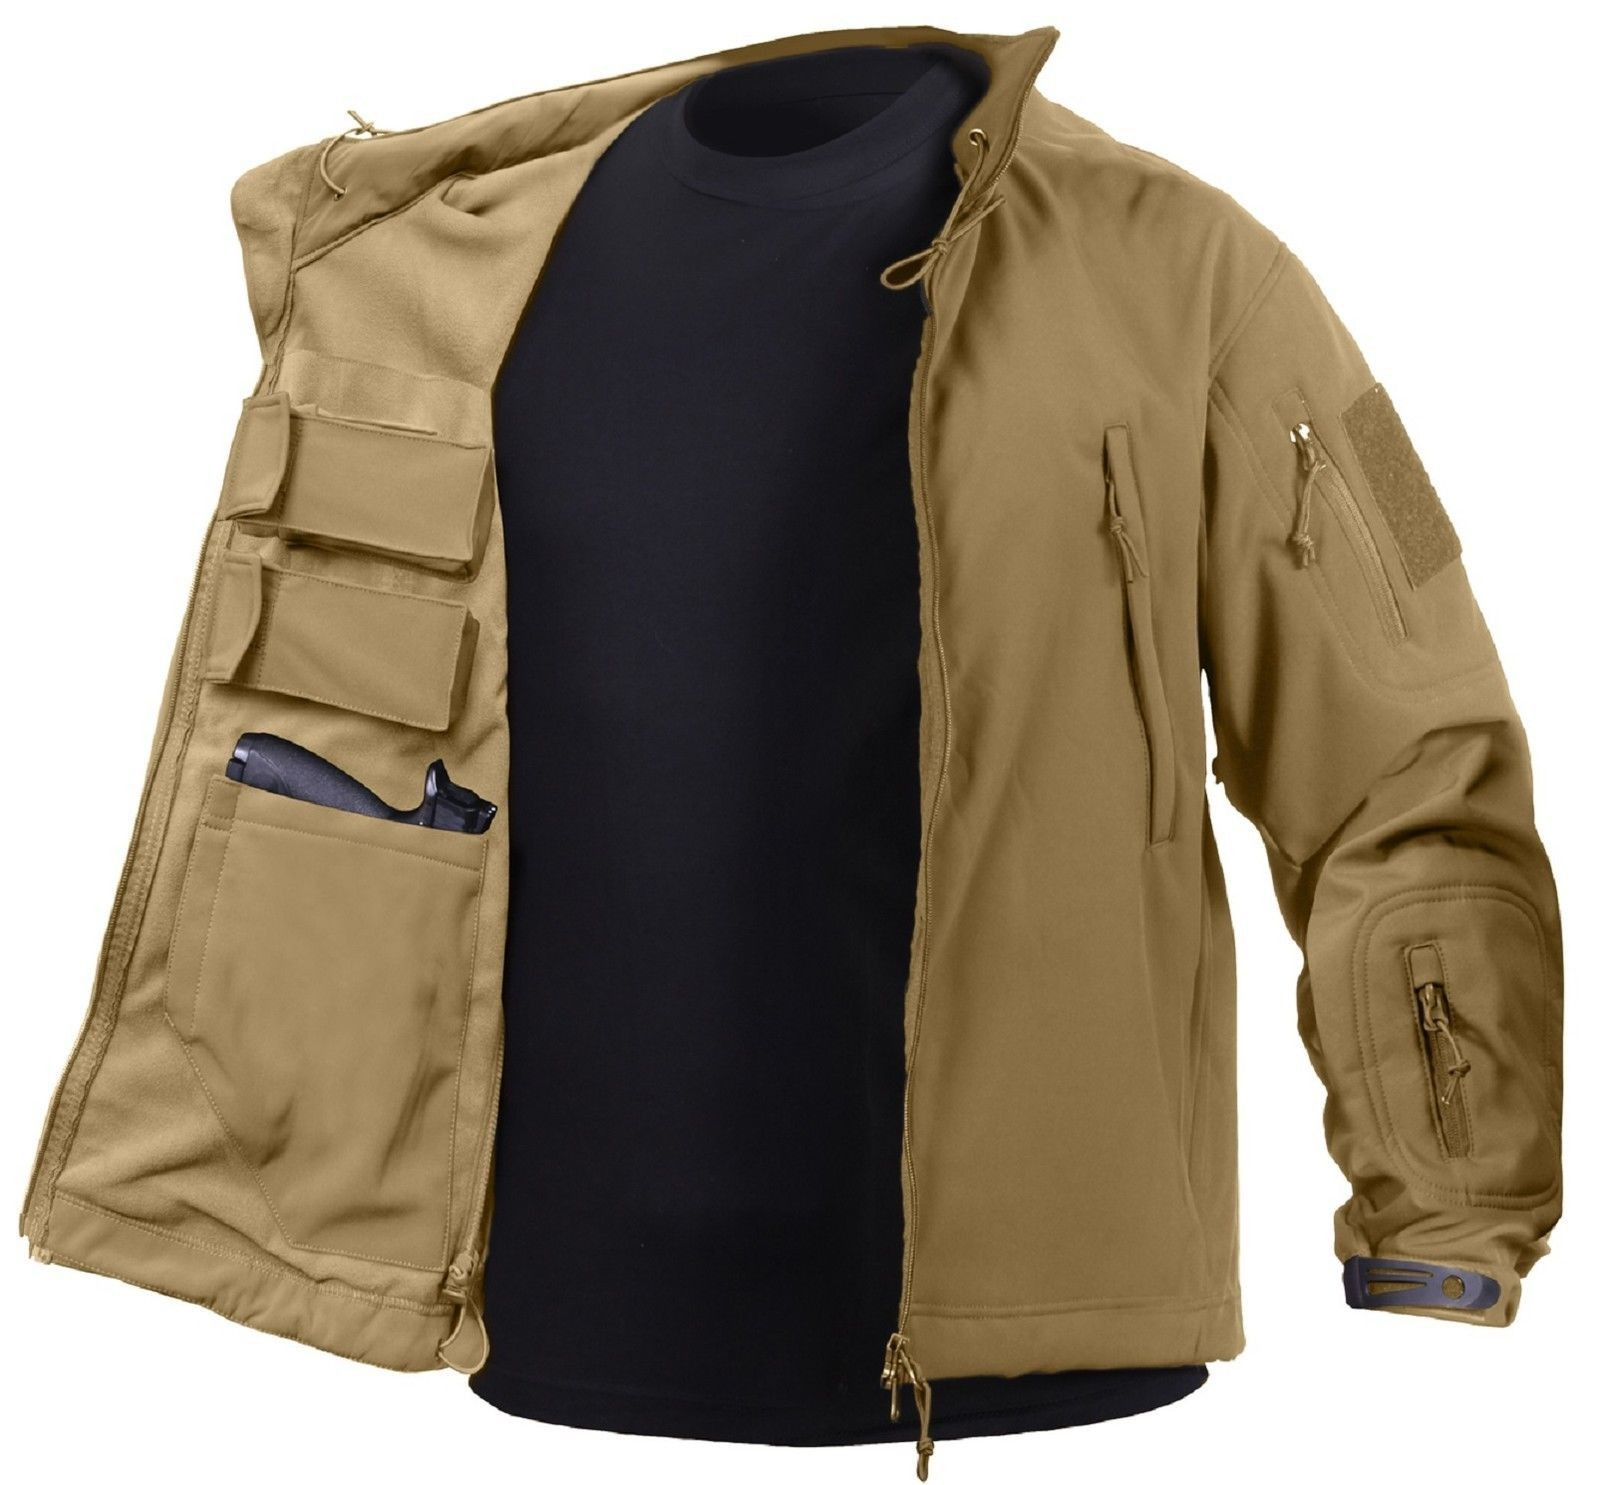 Mens Concealed Carry Soft Shell Tactical Jacket 2 Flag Patches Rothco Ccw Coat Tactical Jacket Soft Shell Jacket Tactical Clothing [ 1485 x 1600 Pixel ]